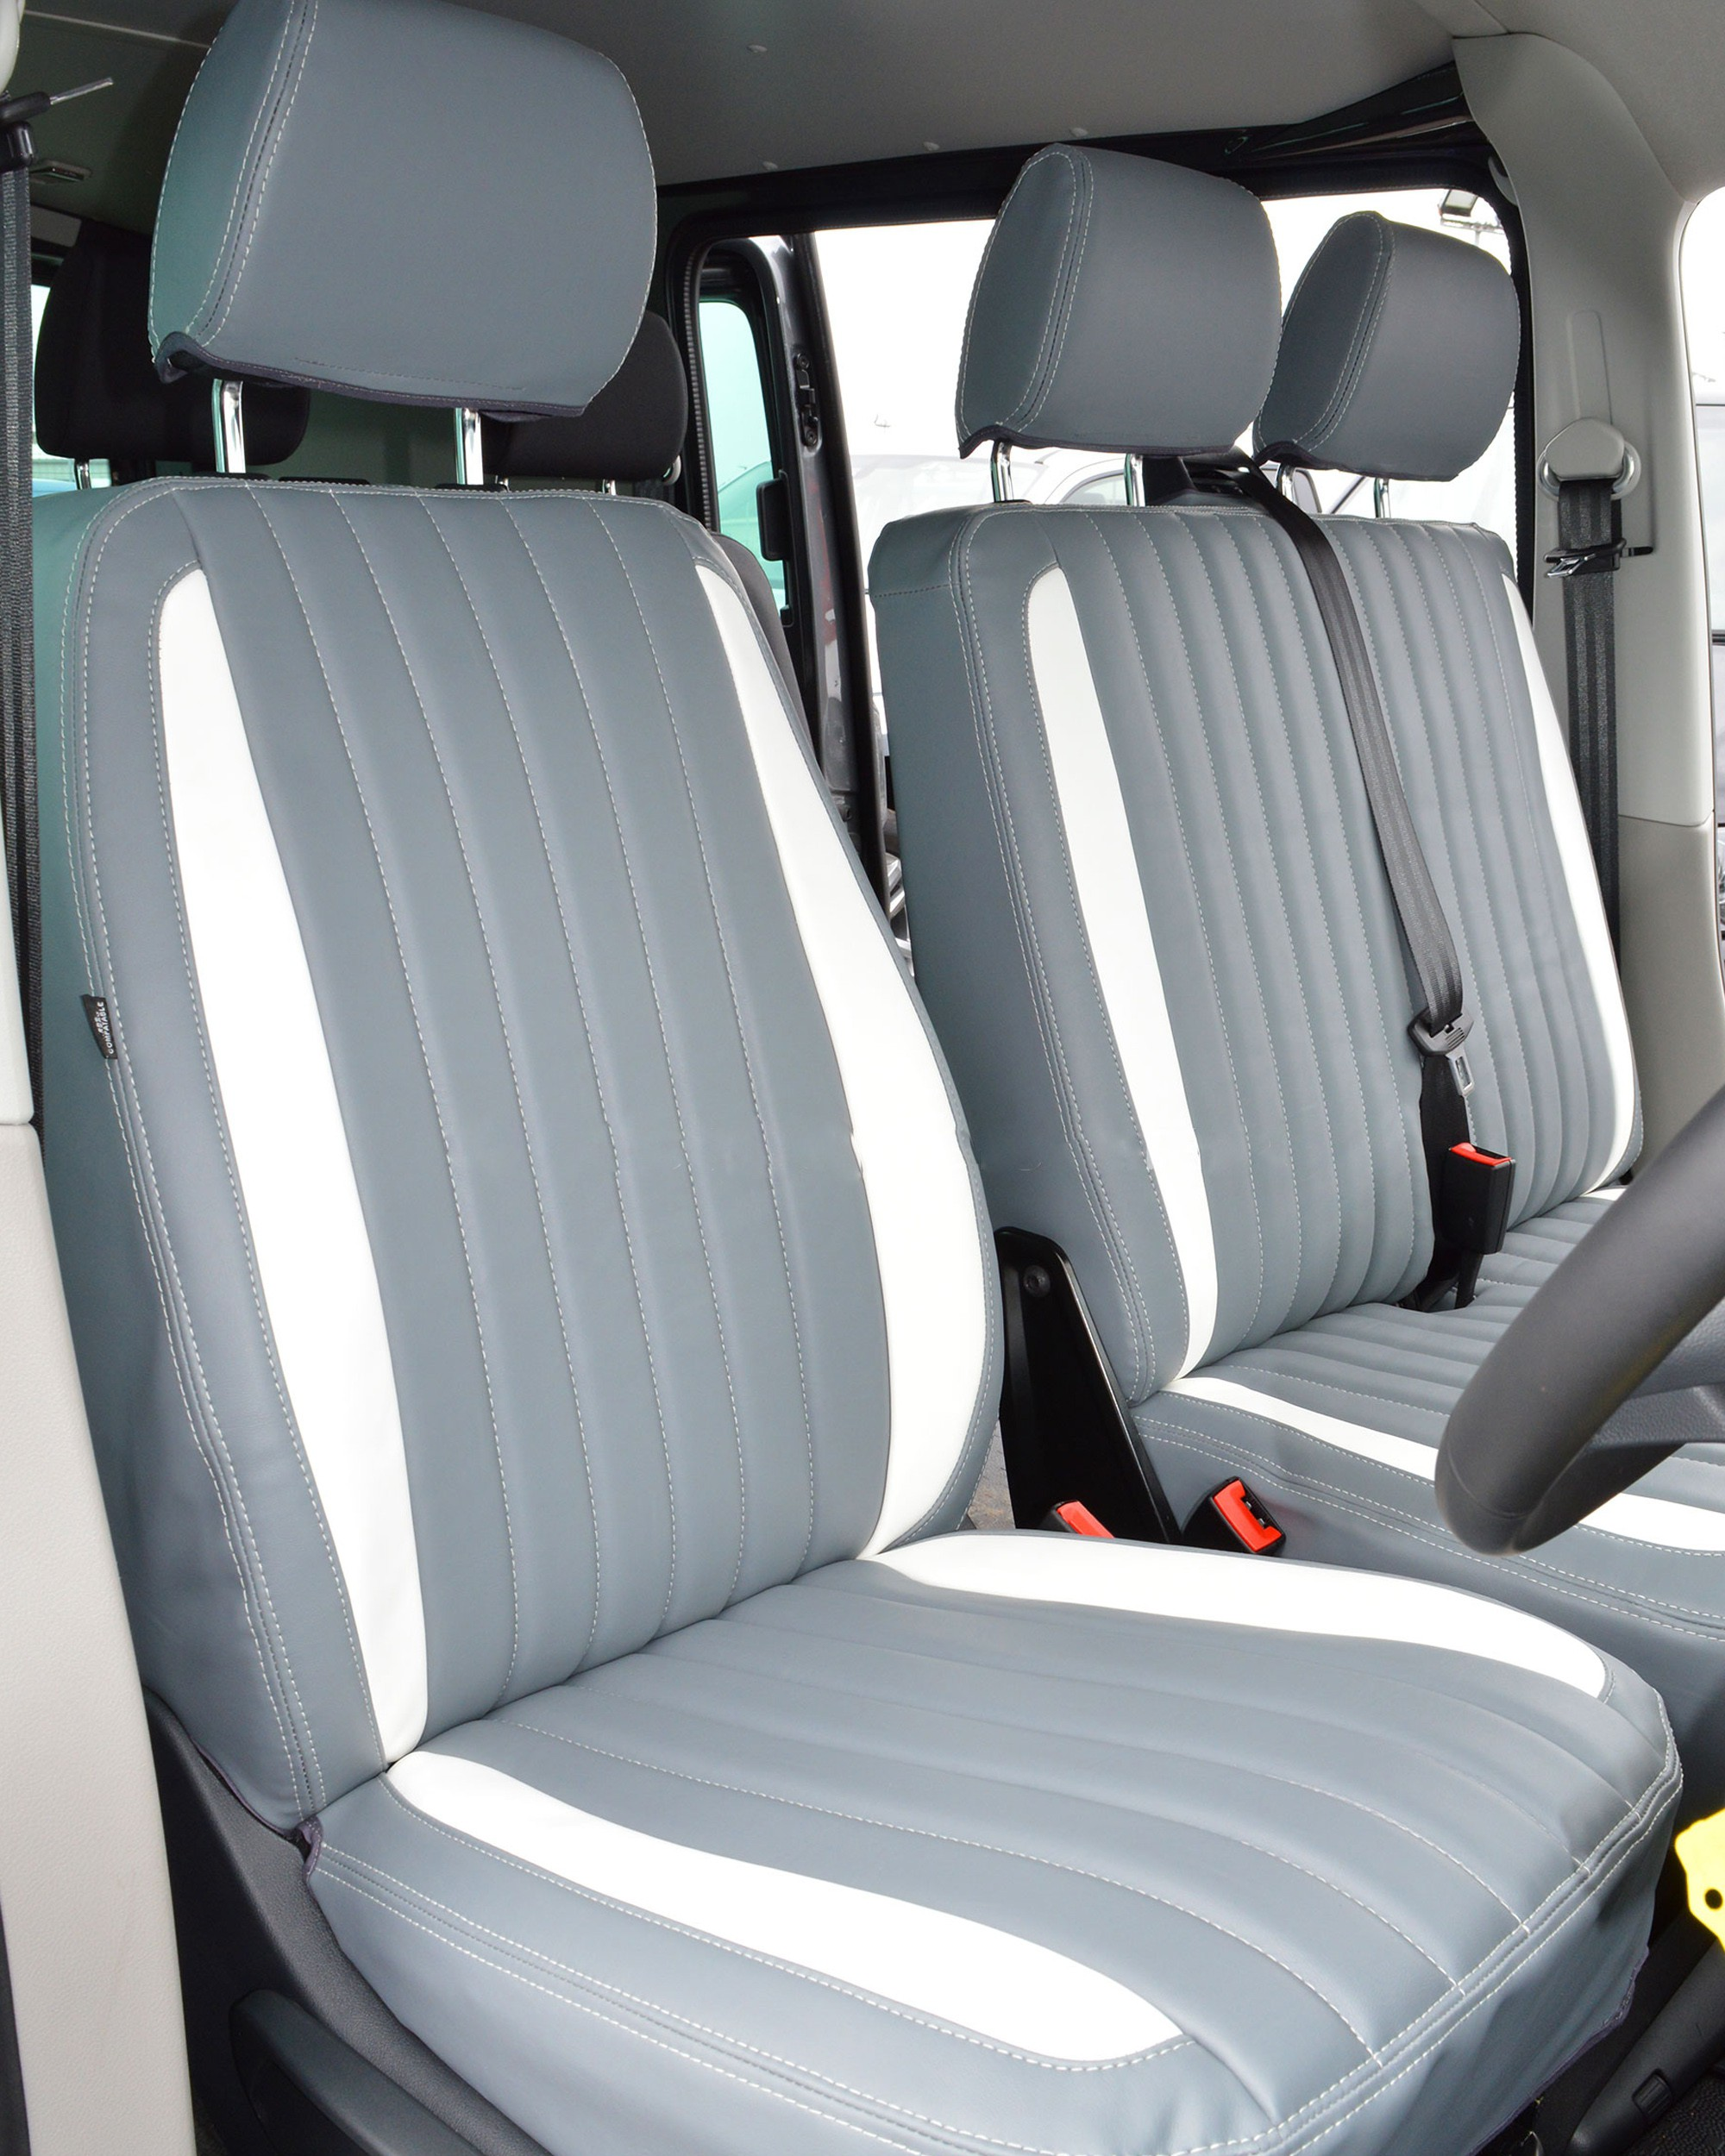 VW Transporter T5 Classic Tailored Seat Covers